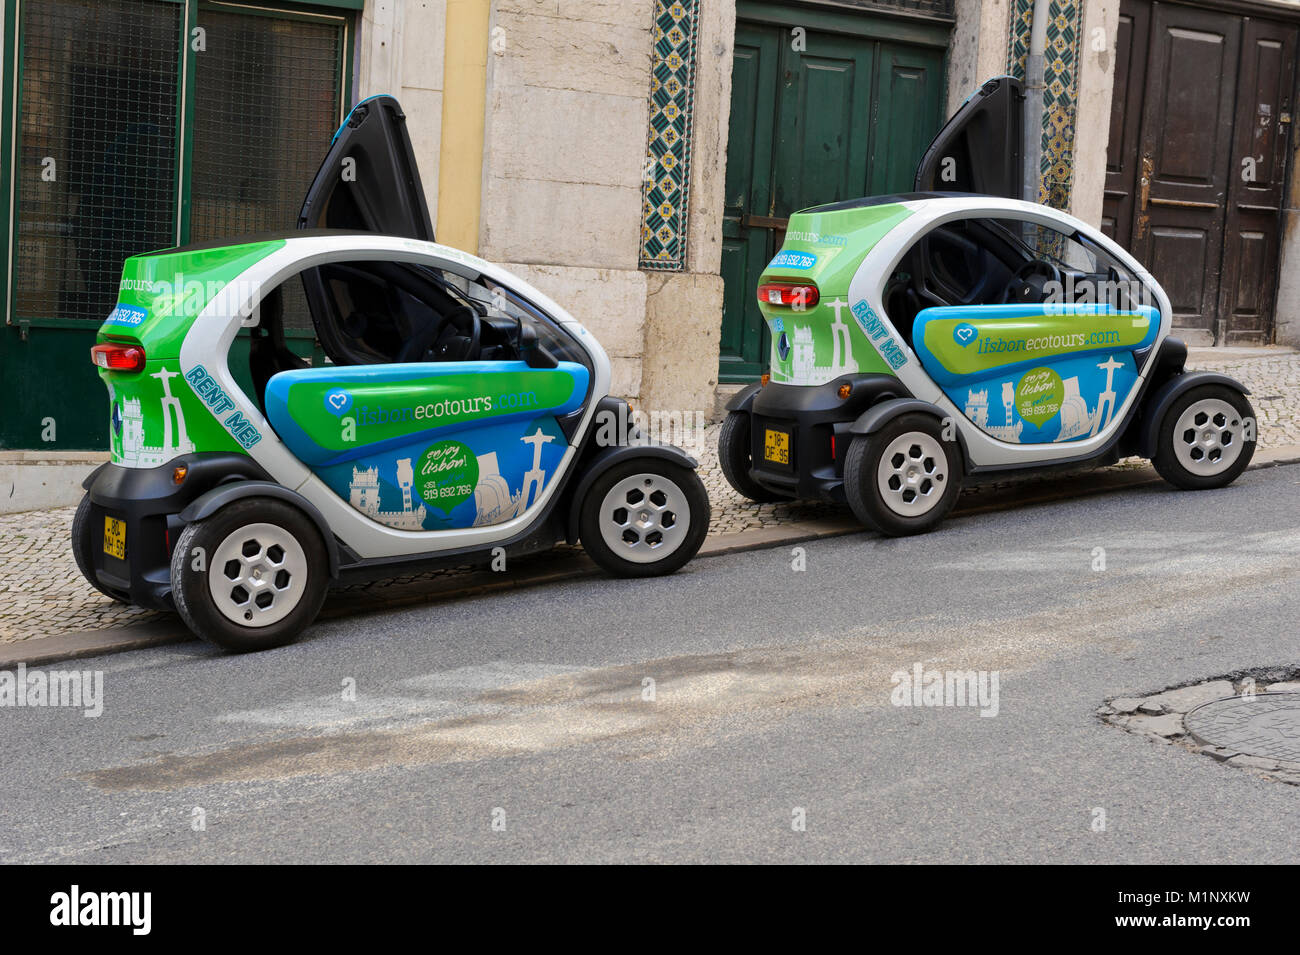 Small ecotour cars parked on one of the streets in Lisbon, Portugal - Stock Image